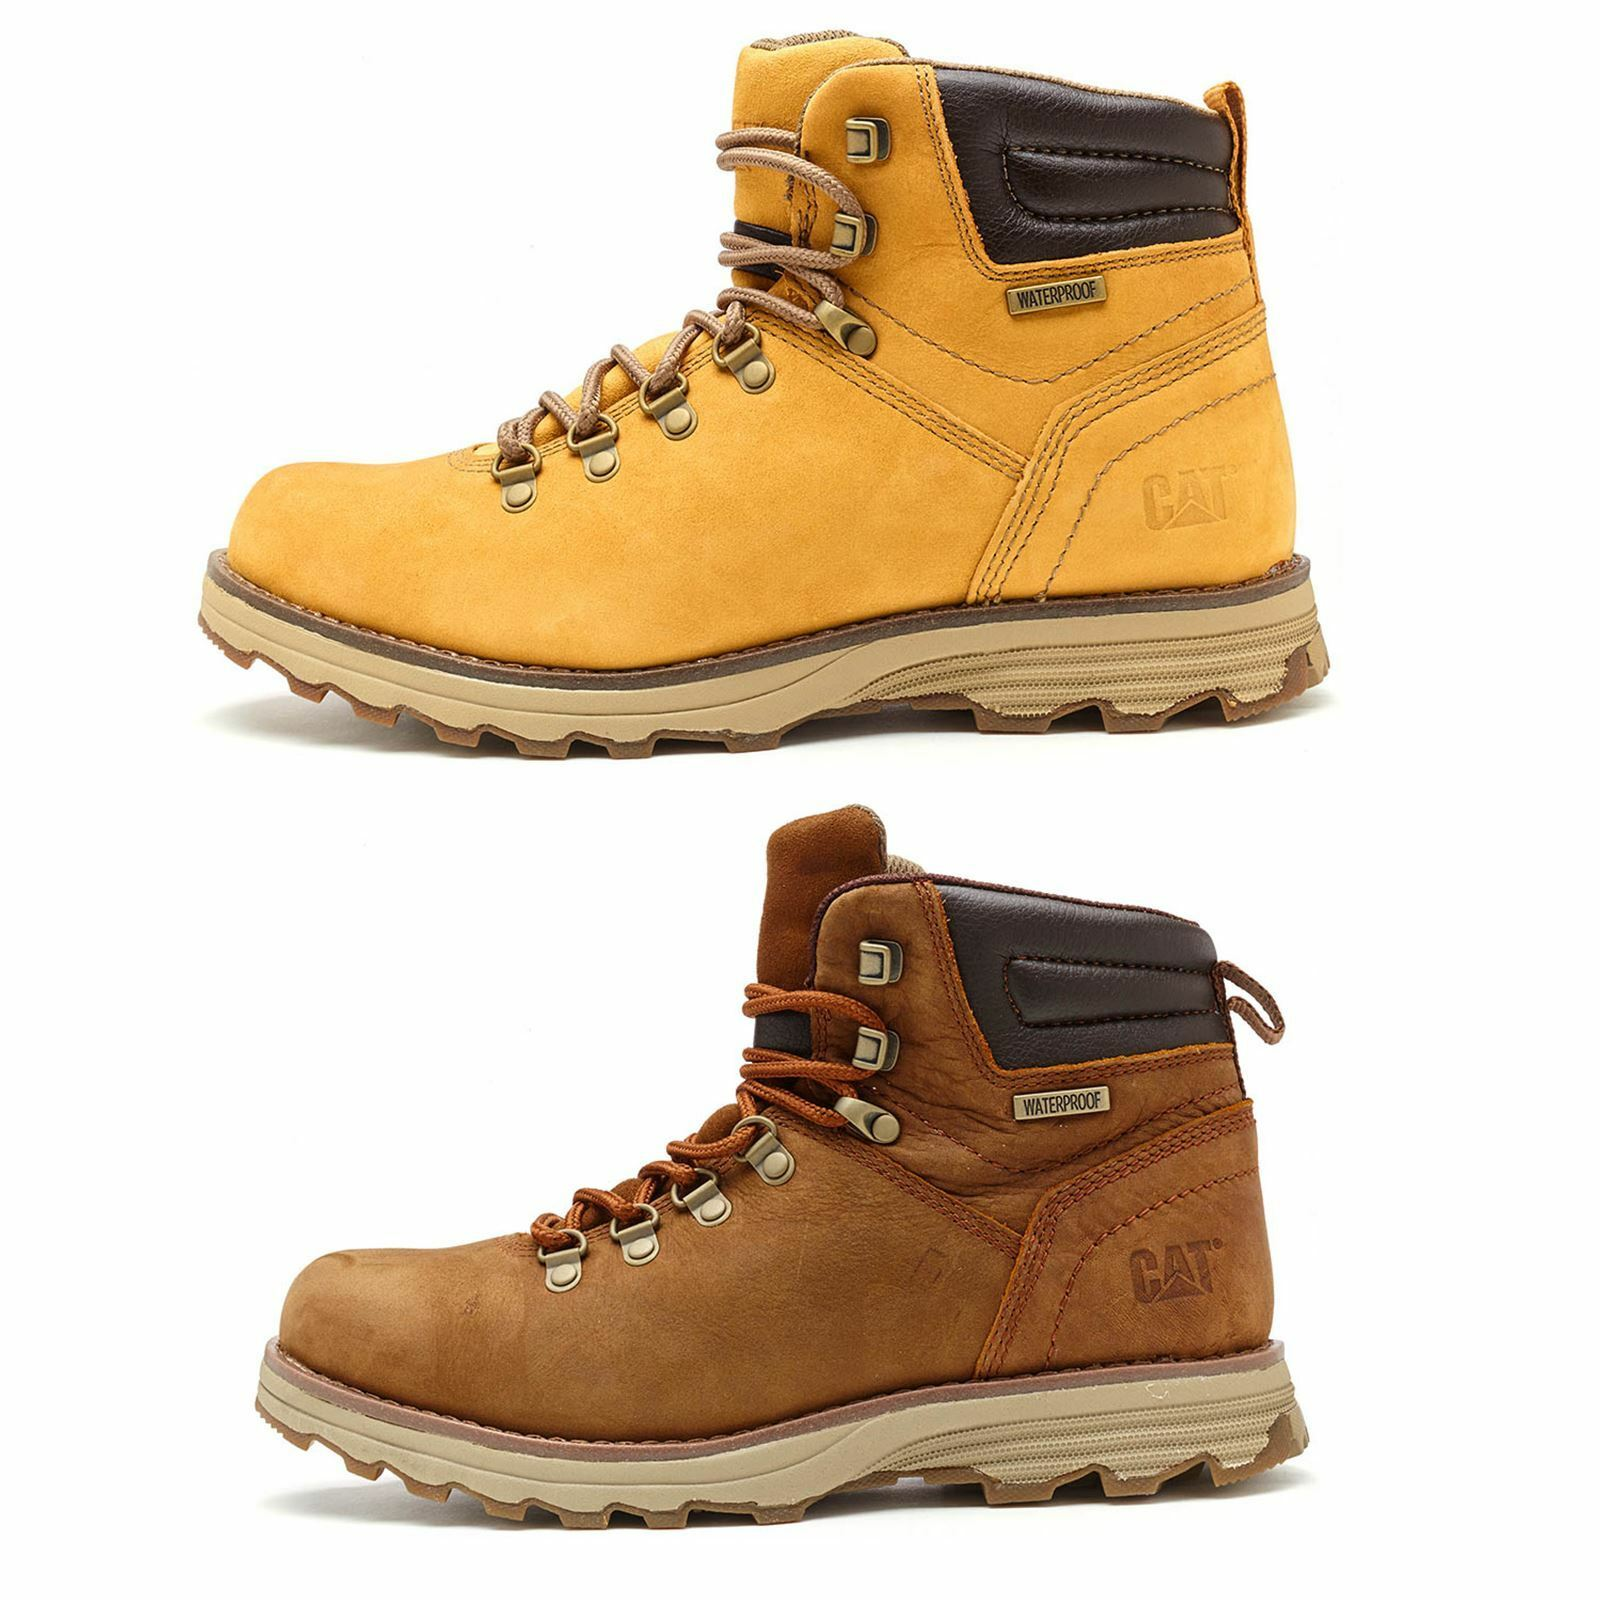 Caterpillar CAT Sire Waterproof Nubuck Boots in Brown & Honey Reset Wheat